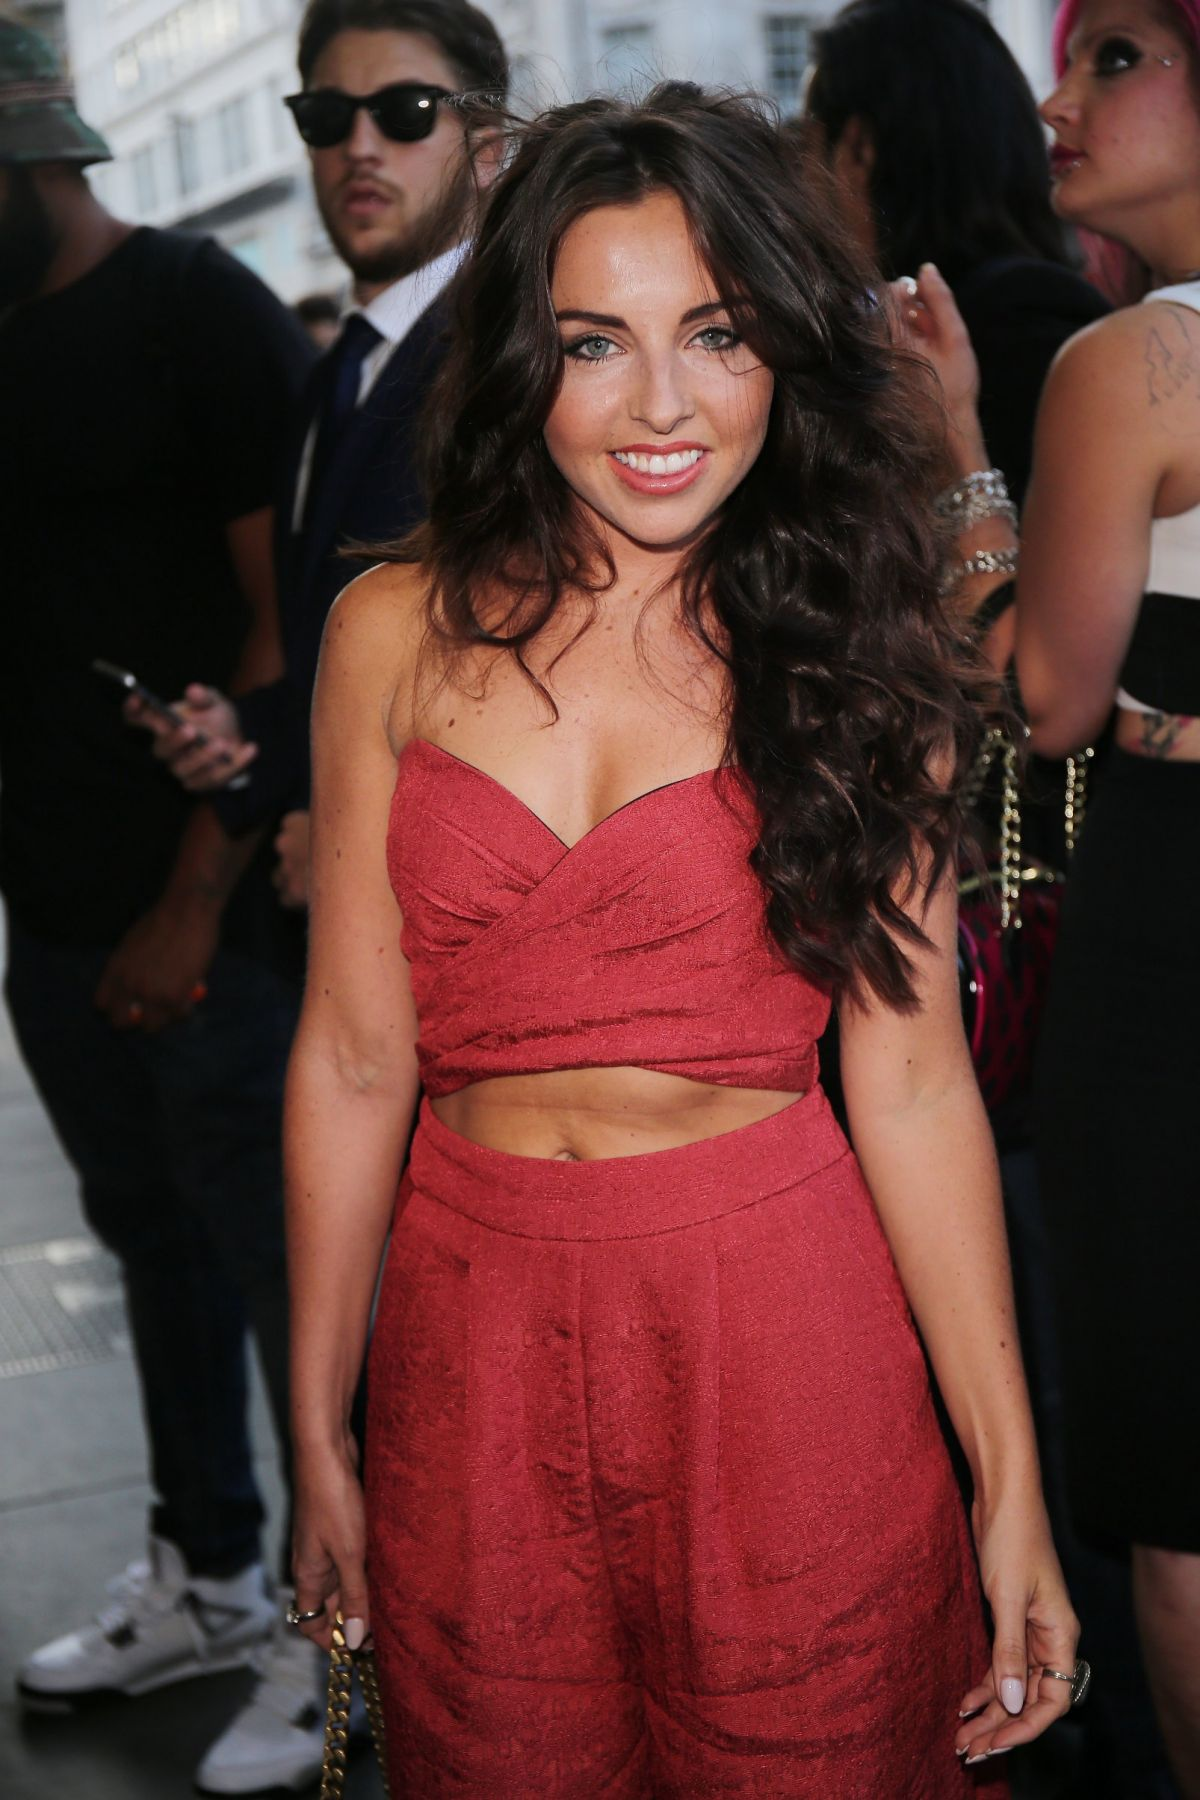 LOUISA LYTTON at The Intent Premiere in London 07/25/2016